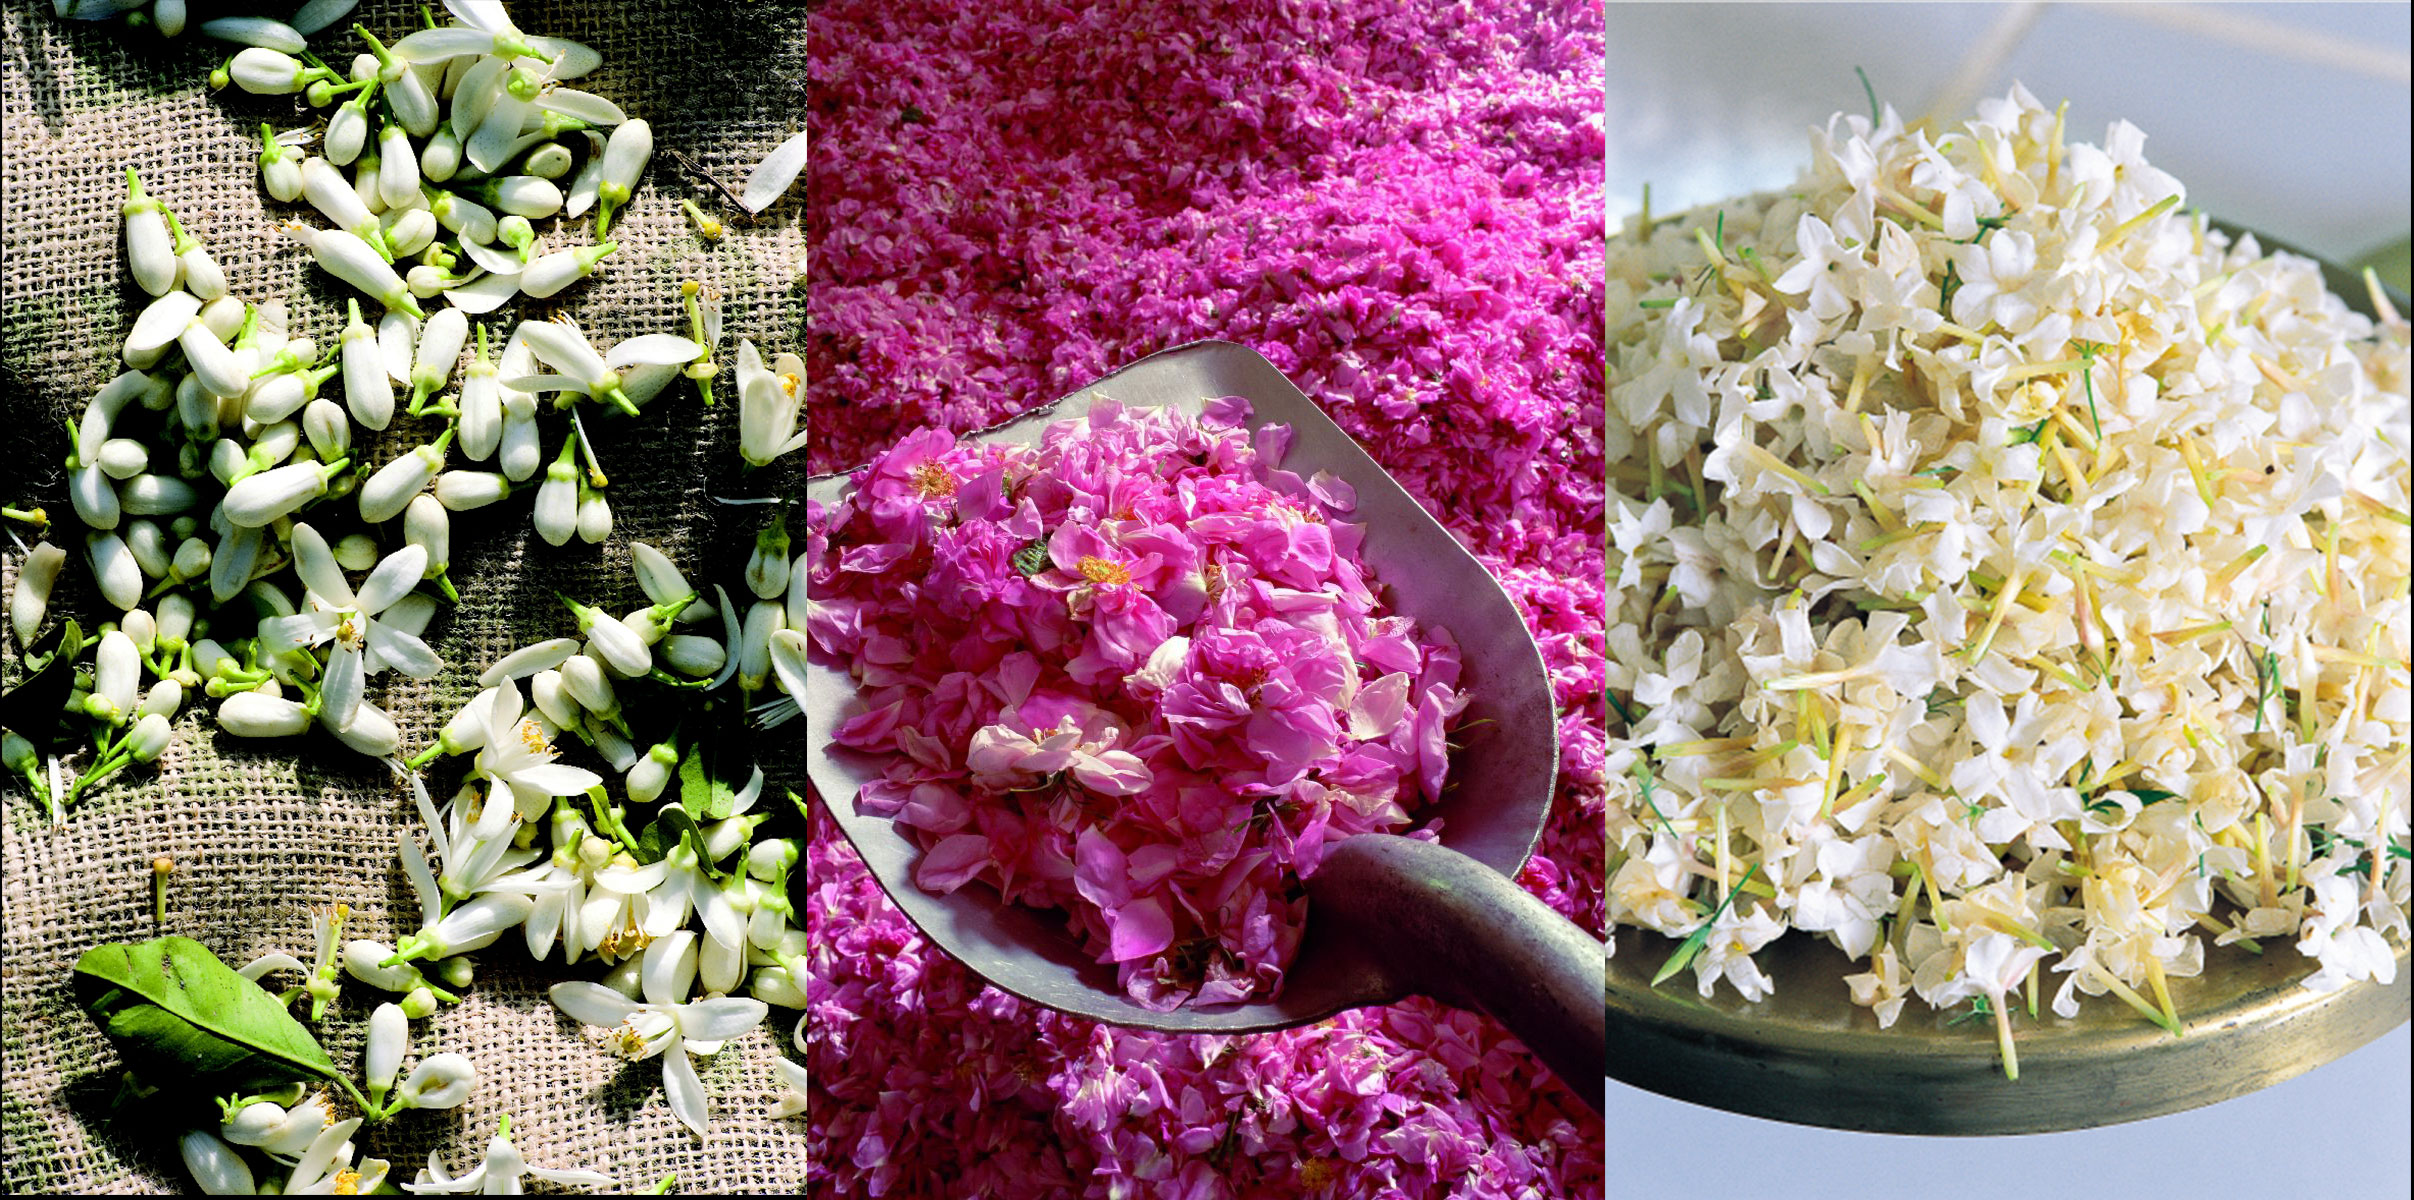 Some of the locally-grown flowers used by Fragonard in its perfumes - orange blossom, roses and jasmin